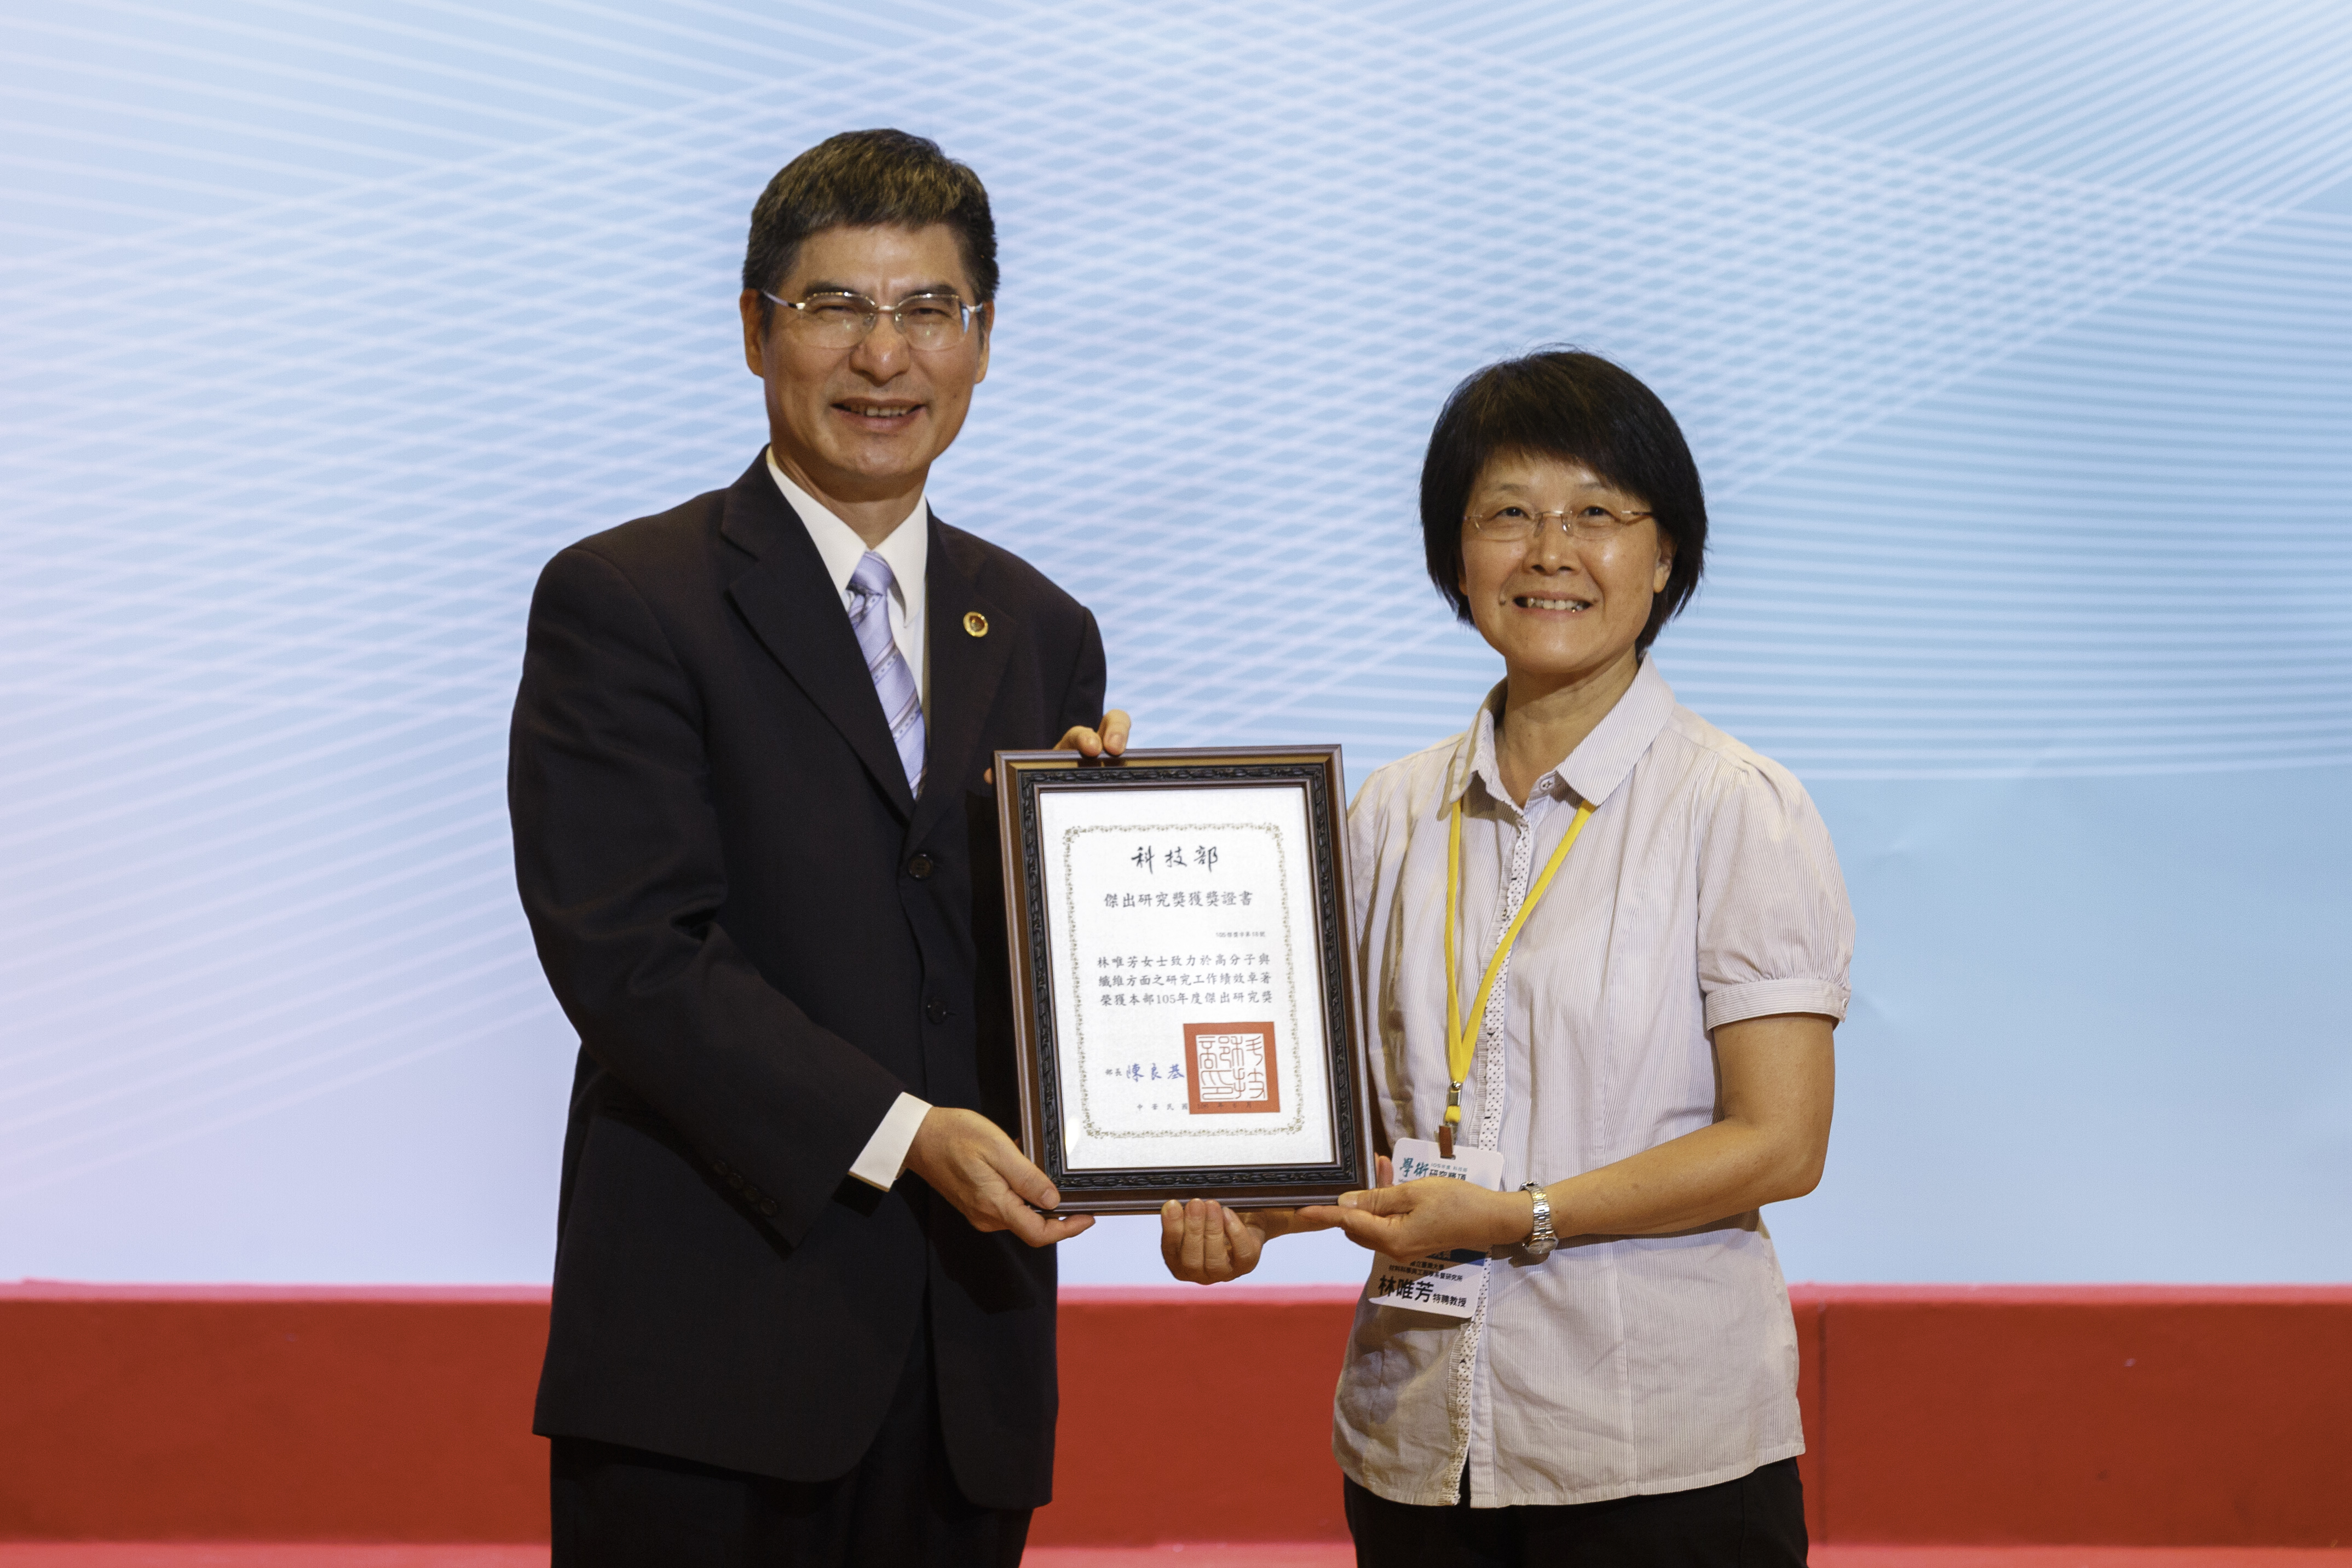 Academic Research Award Wei Fang Su